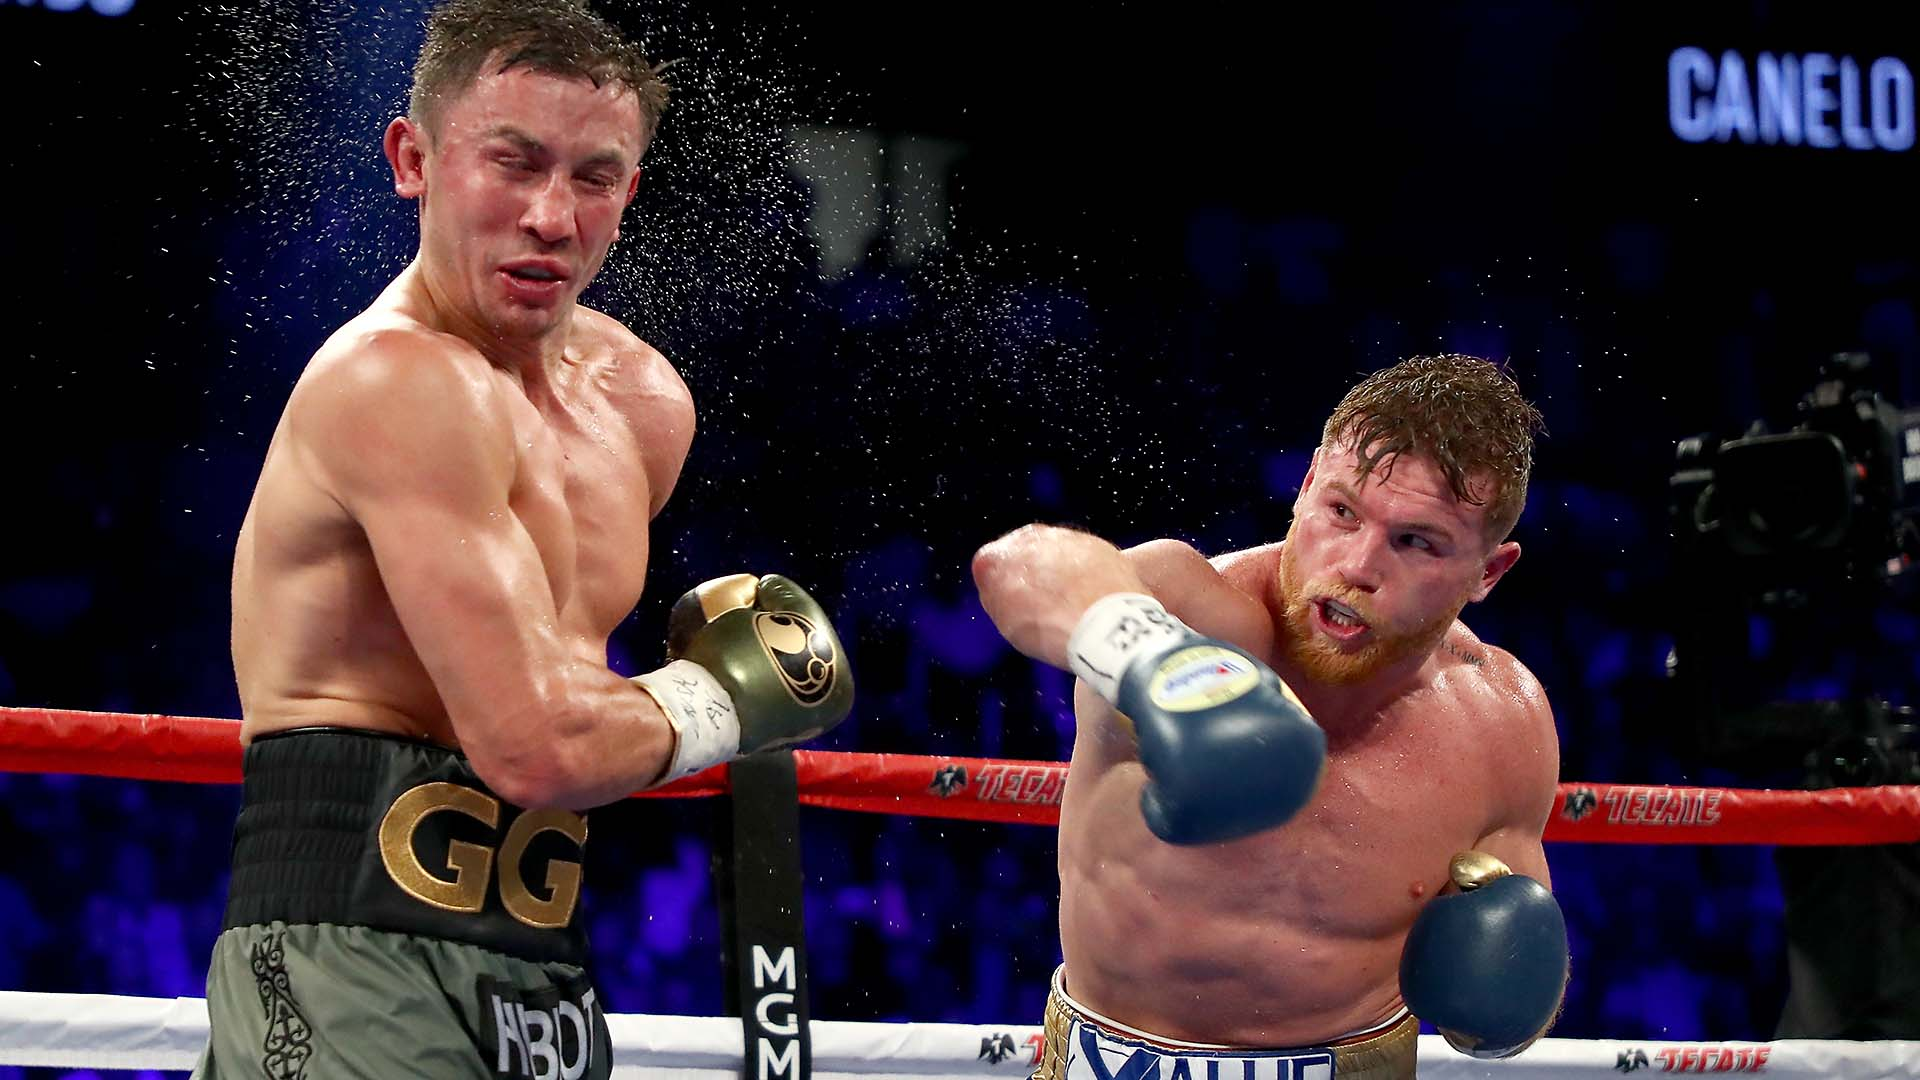 A Definitive Win Over Gennady Golovkin Would Restore Canelos Name